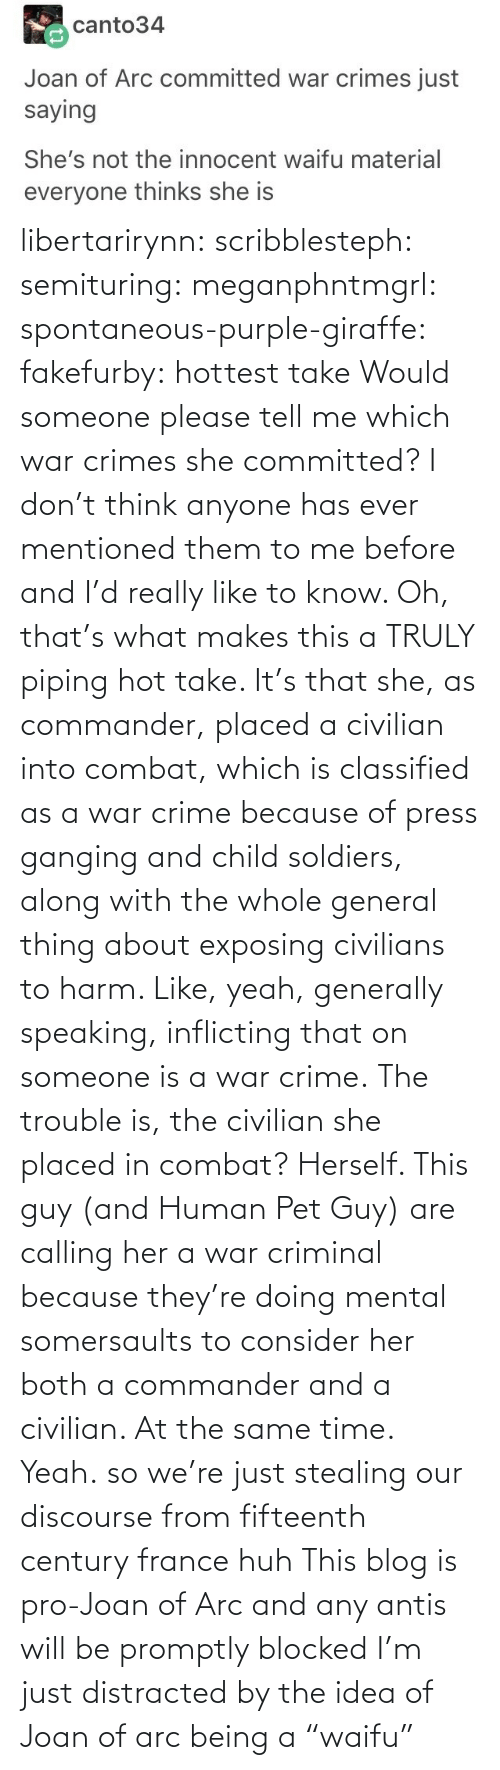 "Crime: libertarirynn: scribblesteph:  semituring:  meganphntmgrl:  spontaneous-purple-giraffe:   fakefurby: hottest take  Would someone please tell me which war crimes she committed? I don't think anyone has ever mentioned them to me before and I'd really like to know.    Oh, that's what makes this a TRULY piping hot take. It's that she, as commander, placed a civilian into combat, which is classified as a war crime because of press ganging and child soldiers, along with the whole general thing about exposing civilians to harm. Like, yeah, generally speaking, inflicting that on someone is a war crime. The trouble is, the civilian she placed in combat? Herself.  This guy (and Human Pet Guy) are calling her a war criminal because they're doing mental somersaults to consider her both a commander and a civilian. At the same time.  Yeah.  so we're just stealing our discourse from fifteenth century france huh   This blog is pro-Joan of Arc and any antis will be promptly blocked   I'm just distracted by the idea of Joan of arc being a ""waifu"""